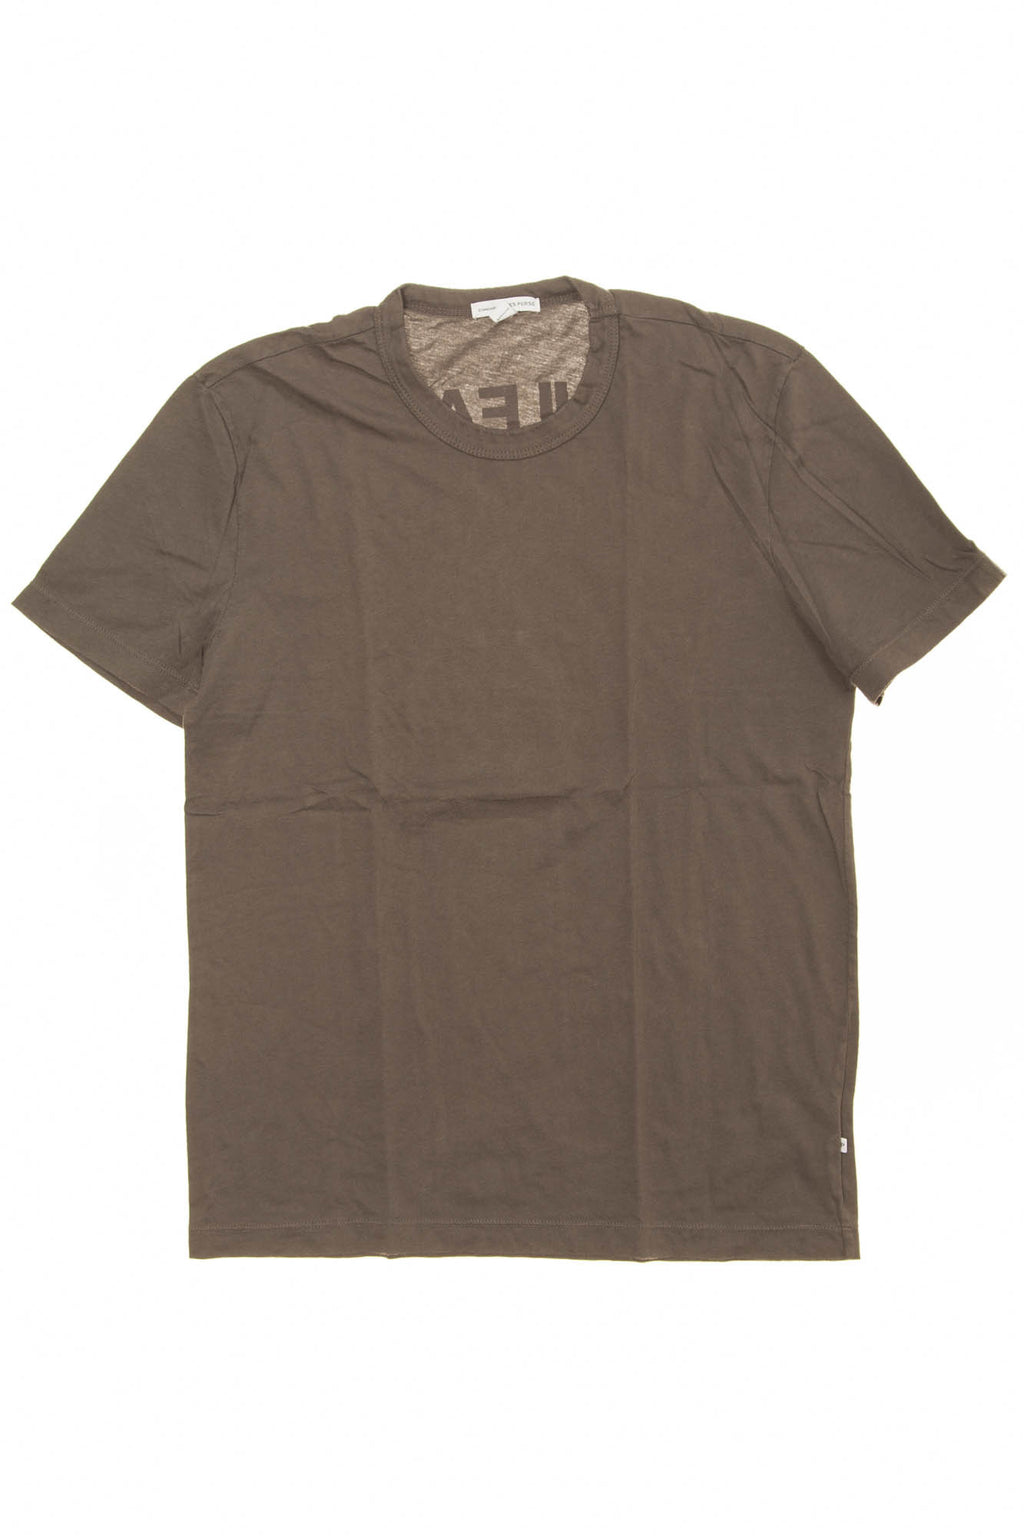 James Perse - Brown Short Sleeve Graphic TShirt